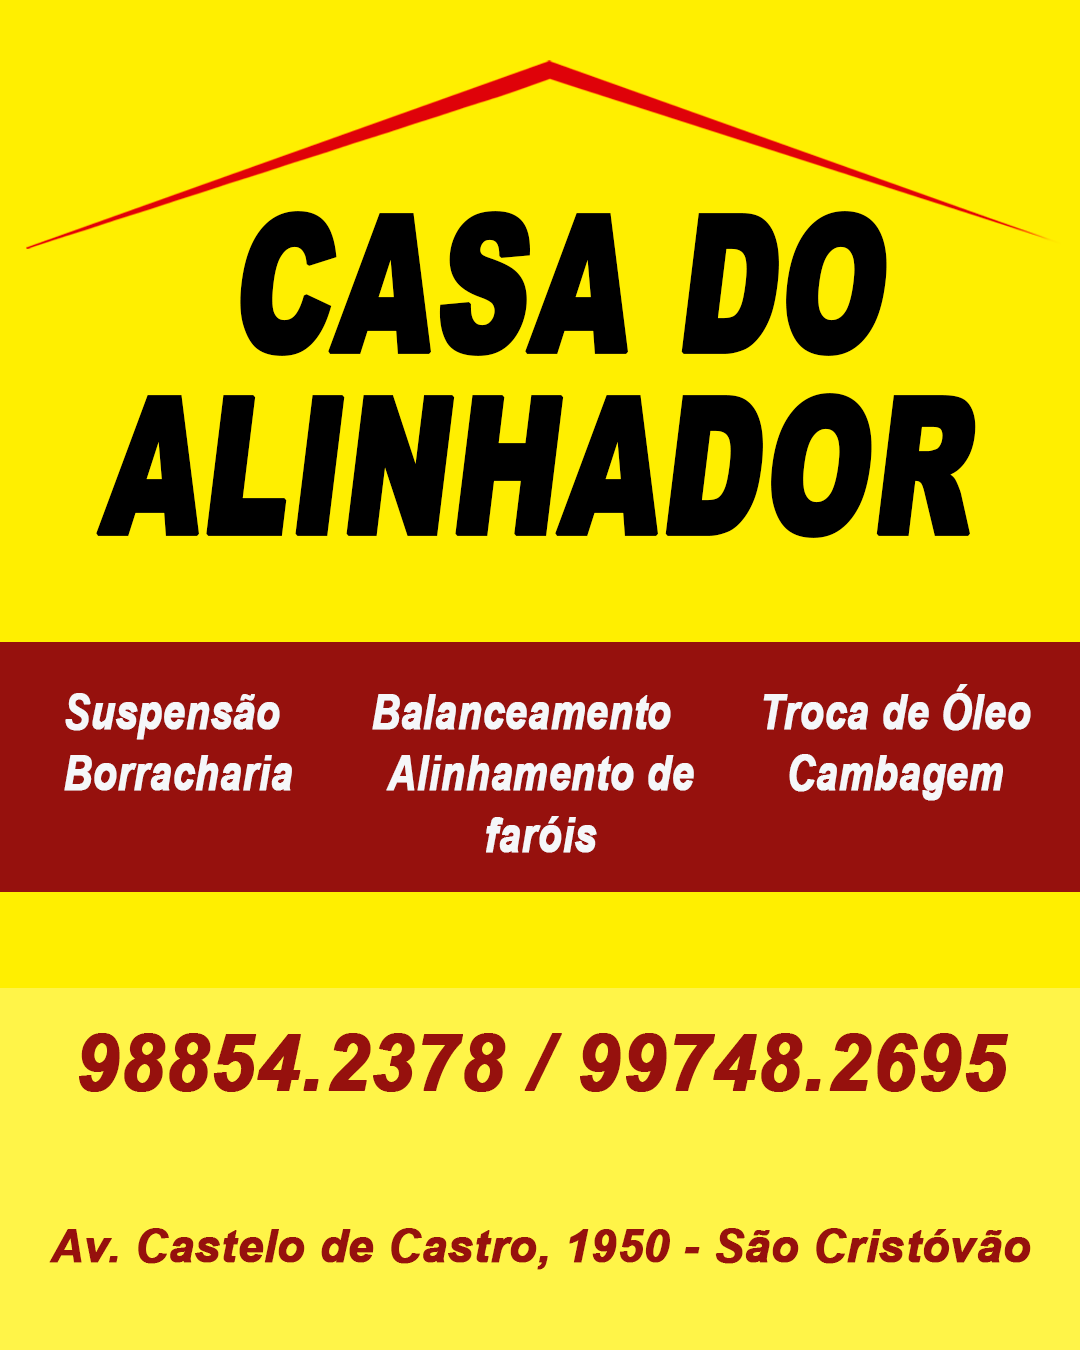 Casa-do-Alinhador